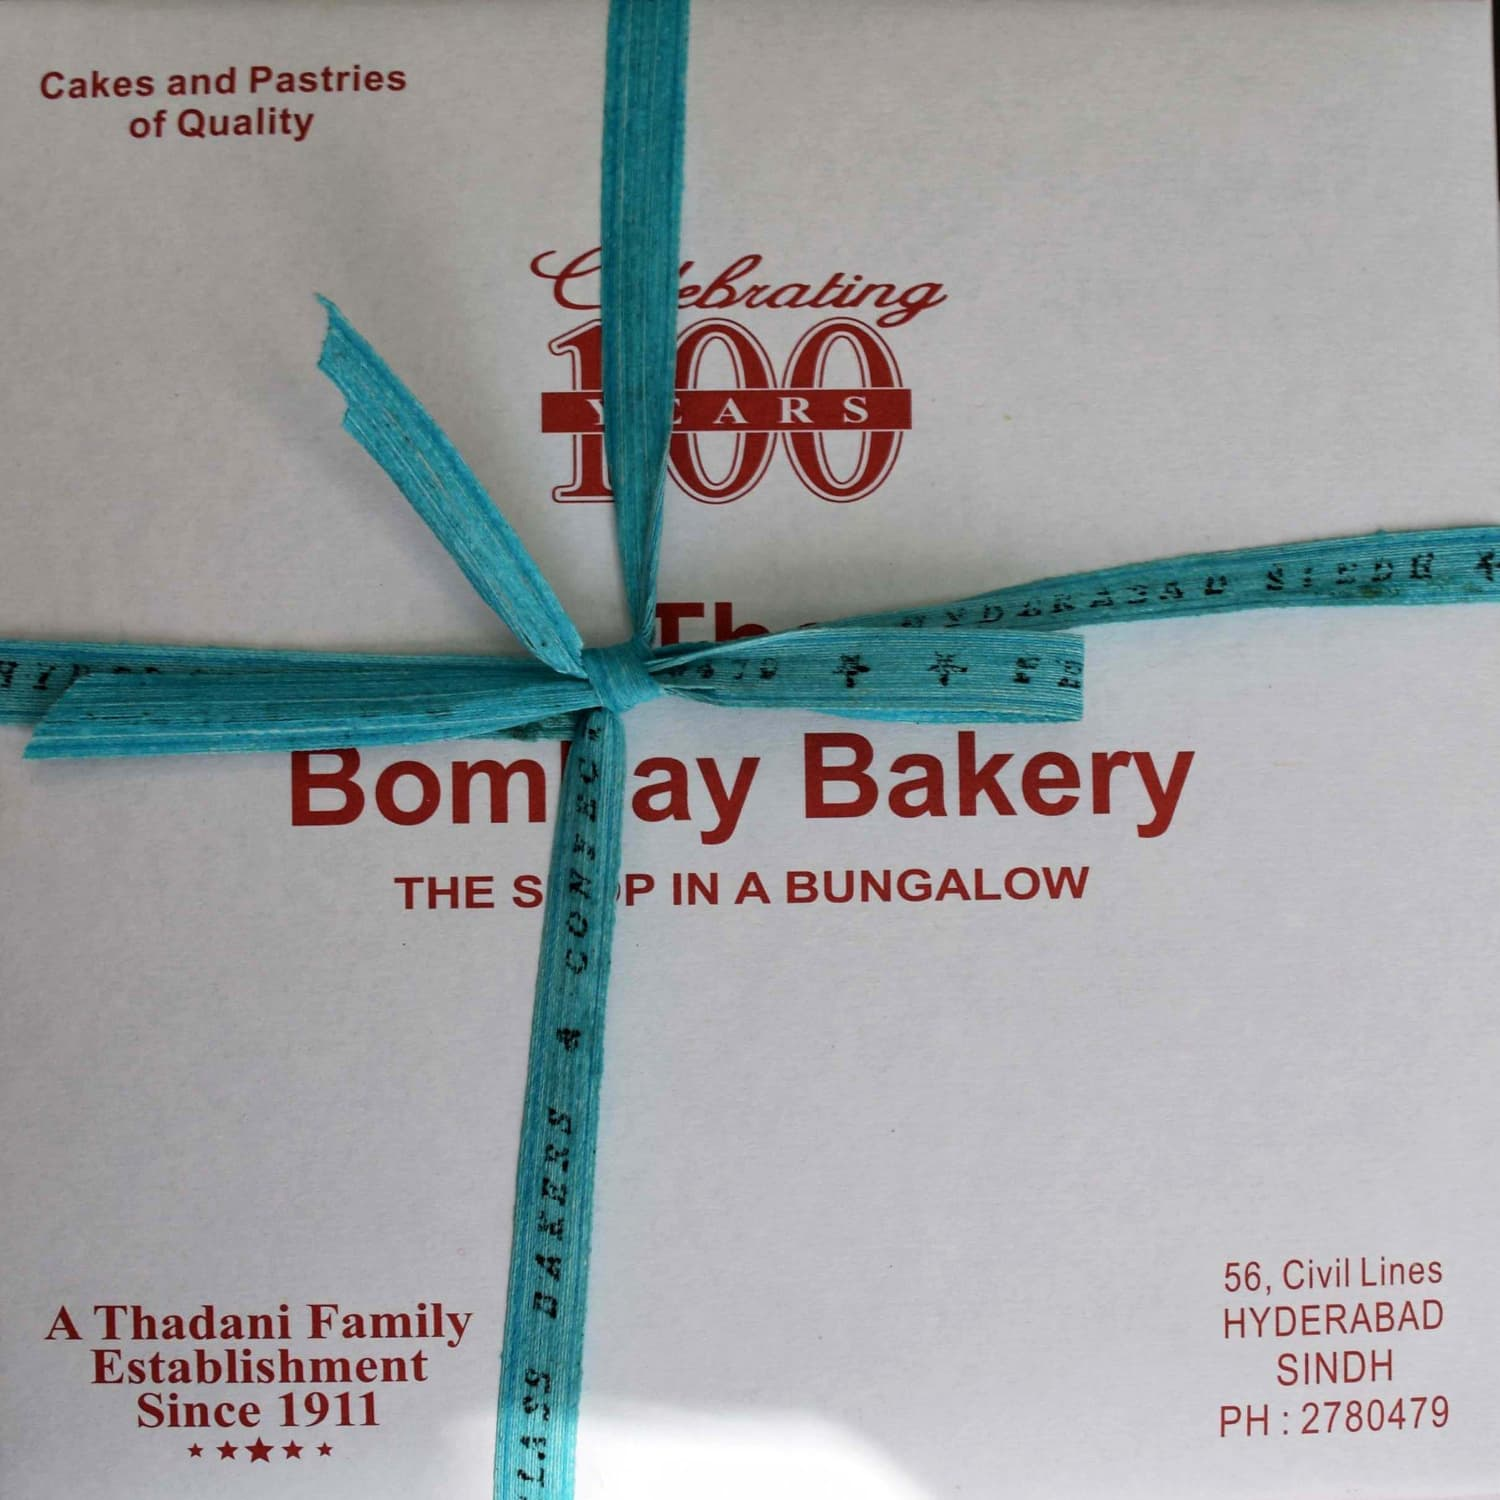 The bakery's ownership and business stays strictly within the family.